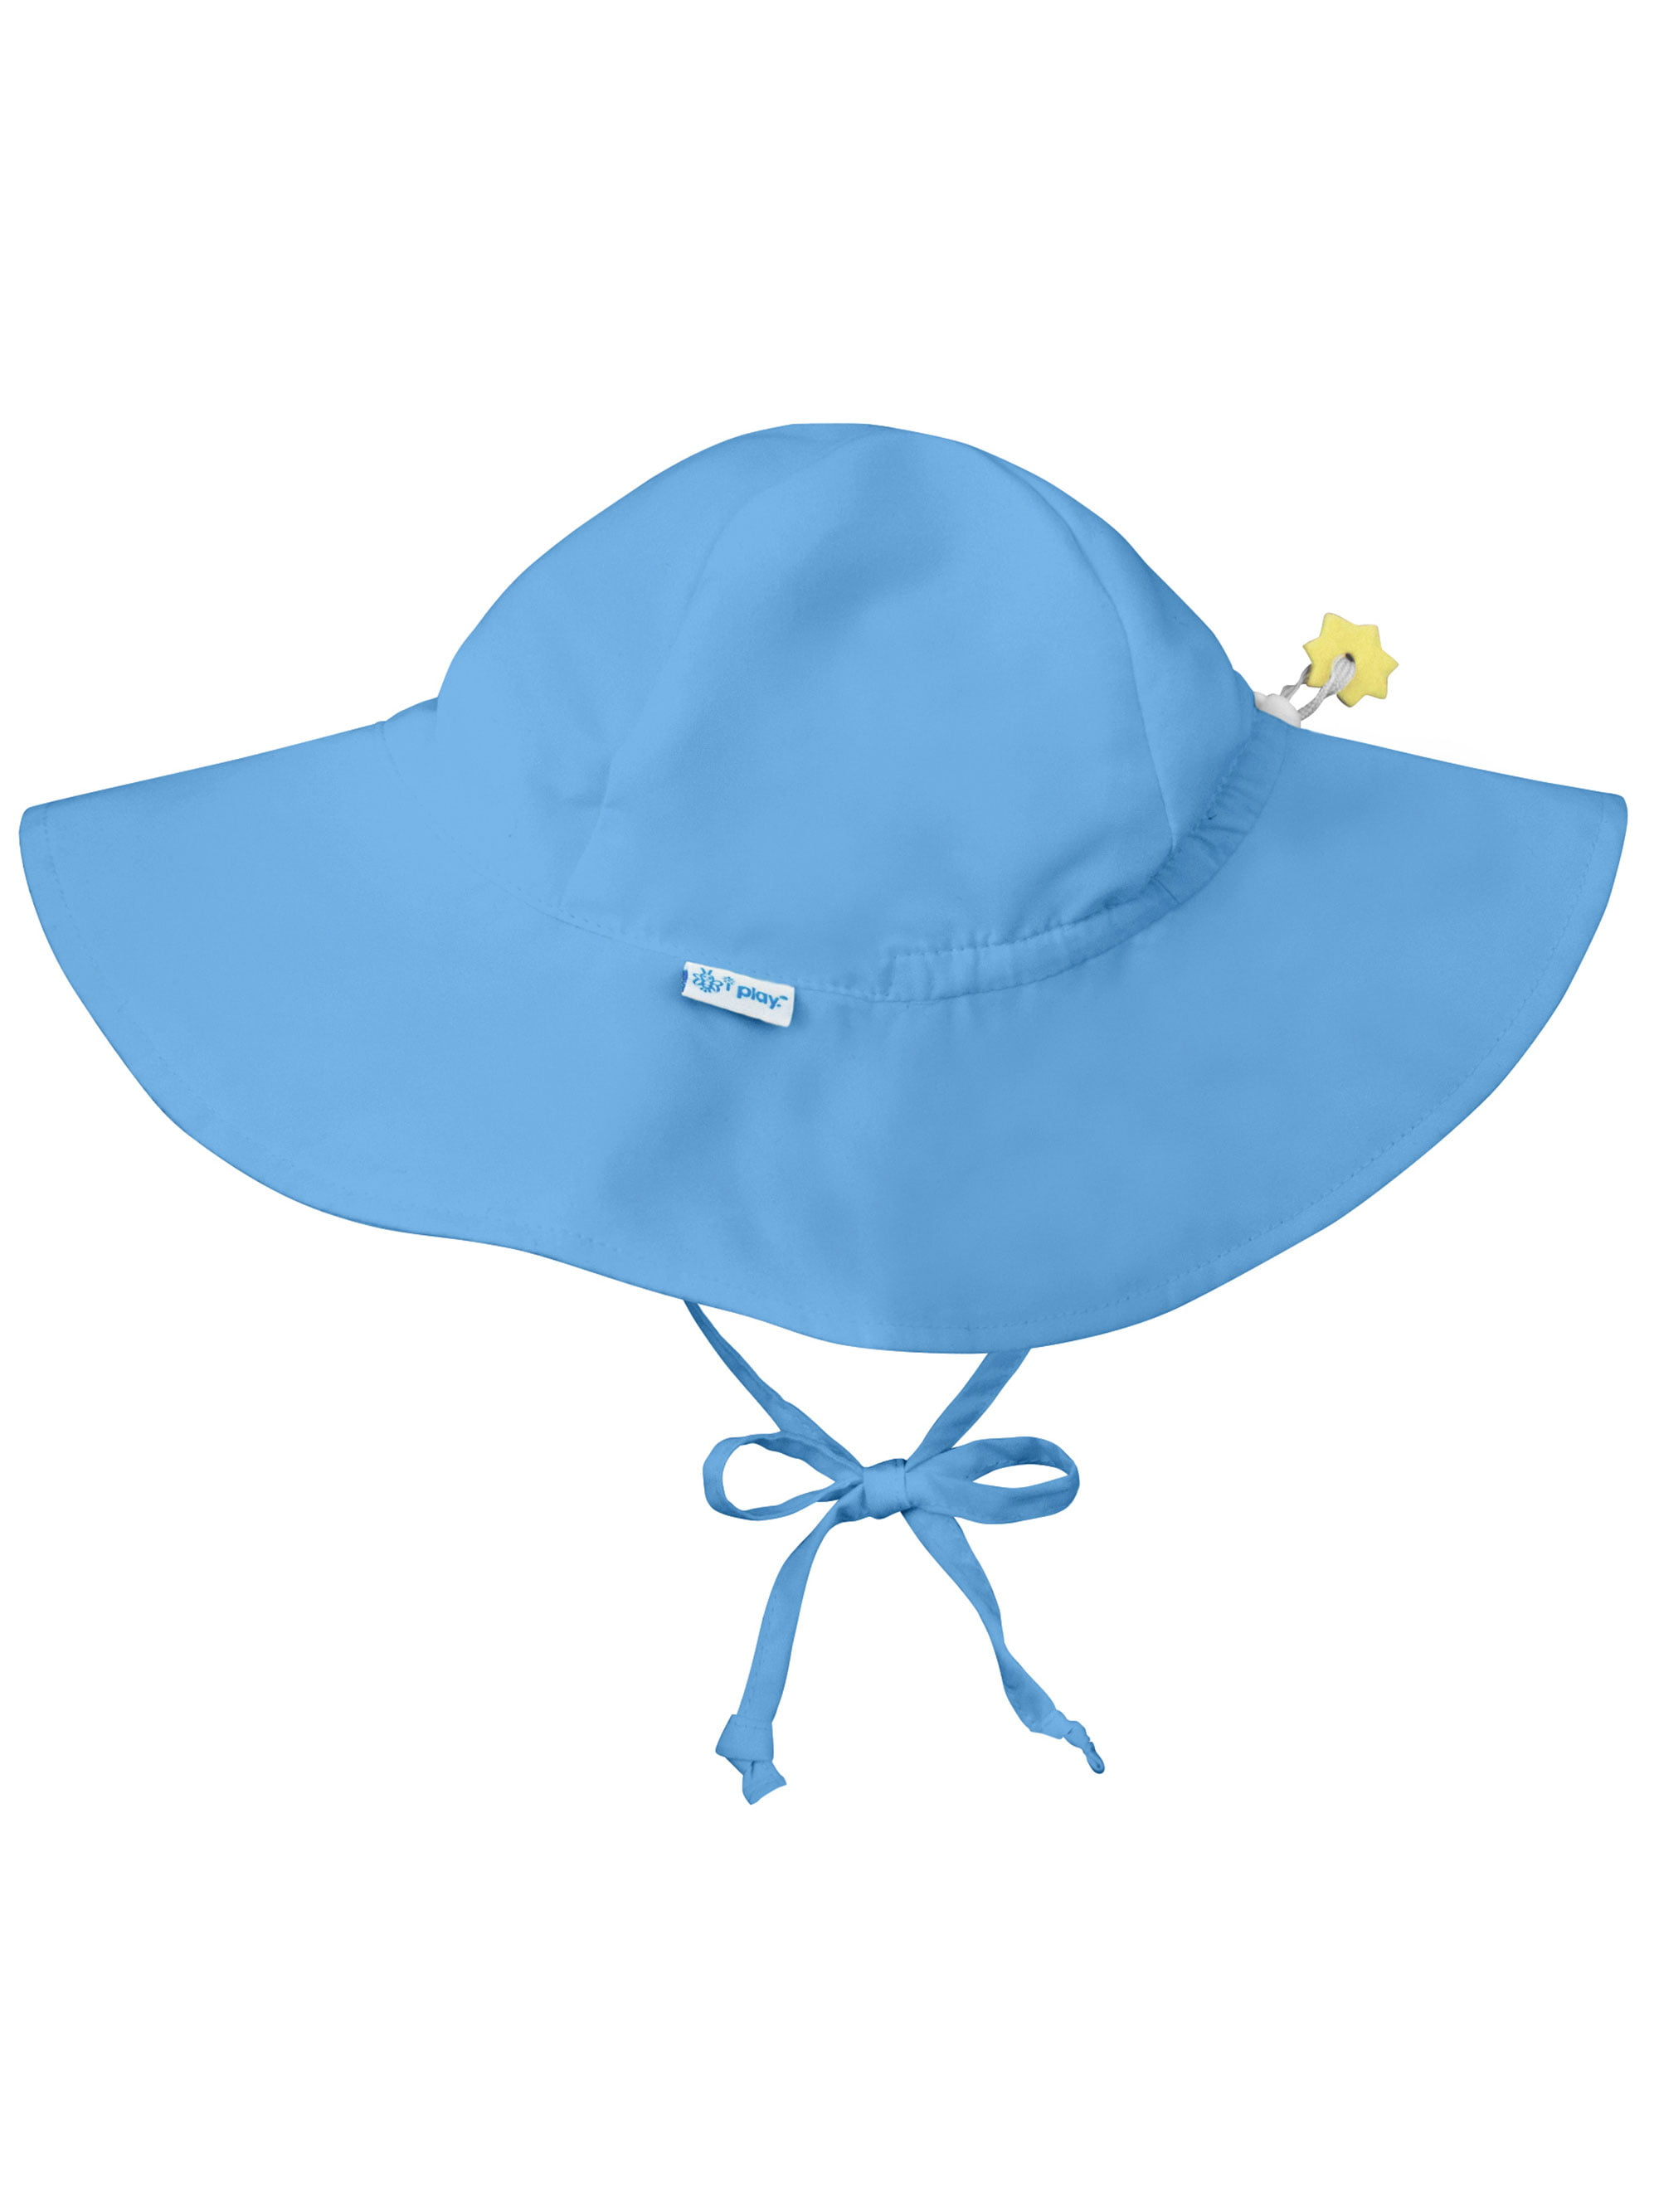 96b635716f2b9e Iplay Brim Sun Hat for Baby Boys Sun Protection Wide Brimmed Hat Solid  Light Blue-Infant 9-18 Months Baby Boy Hat Is Adjustable To Fit Outdoor Hat  With Chin ...